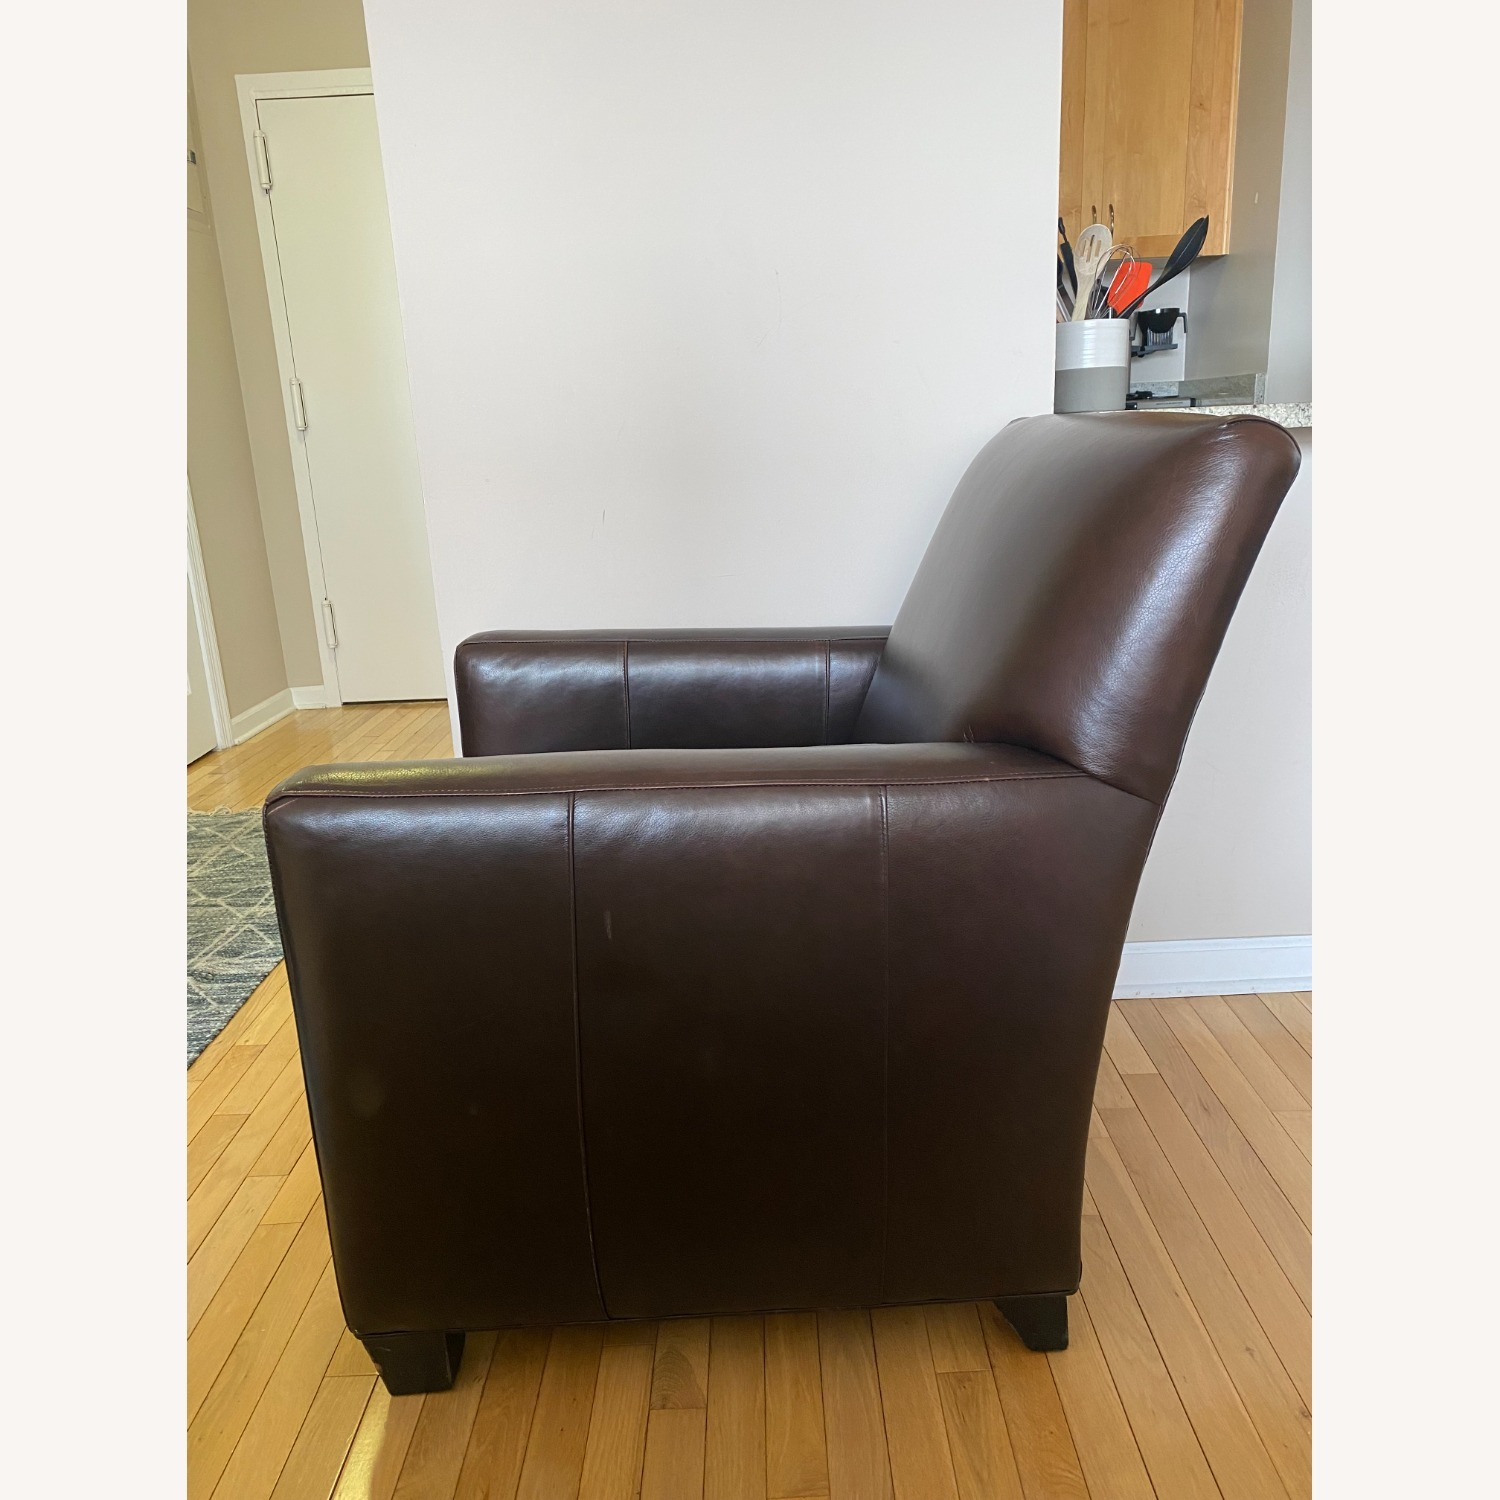 Crate & Barrel Leather Chair - image-3